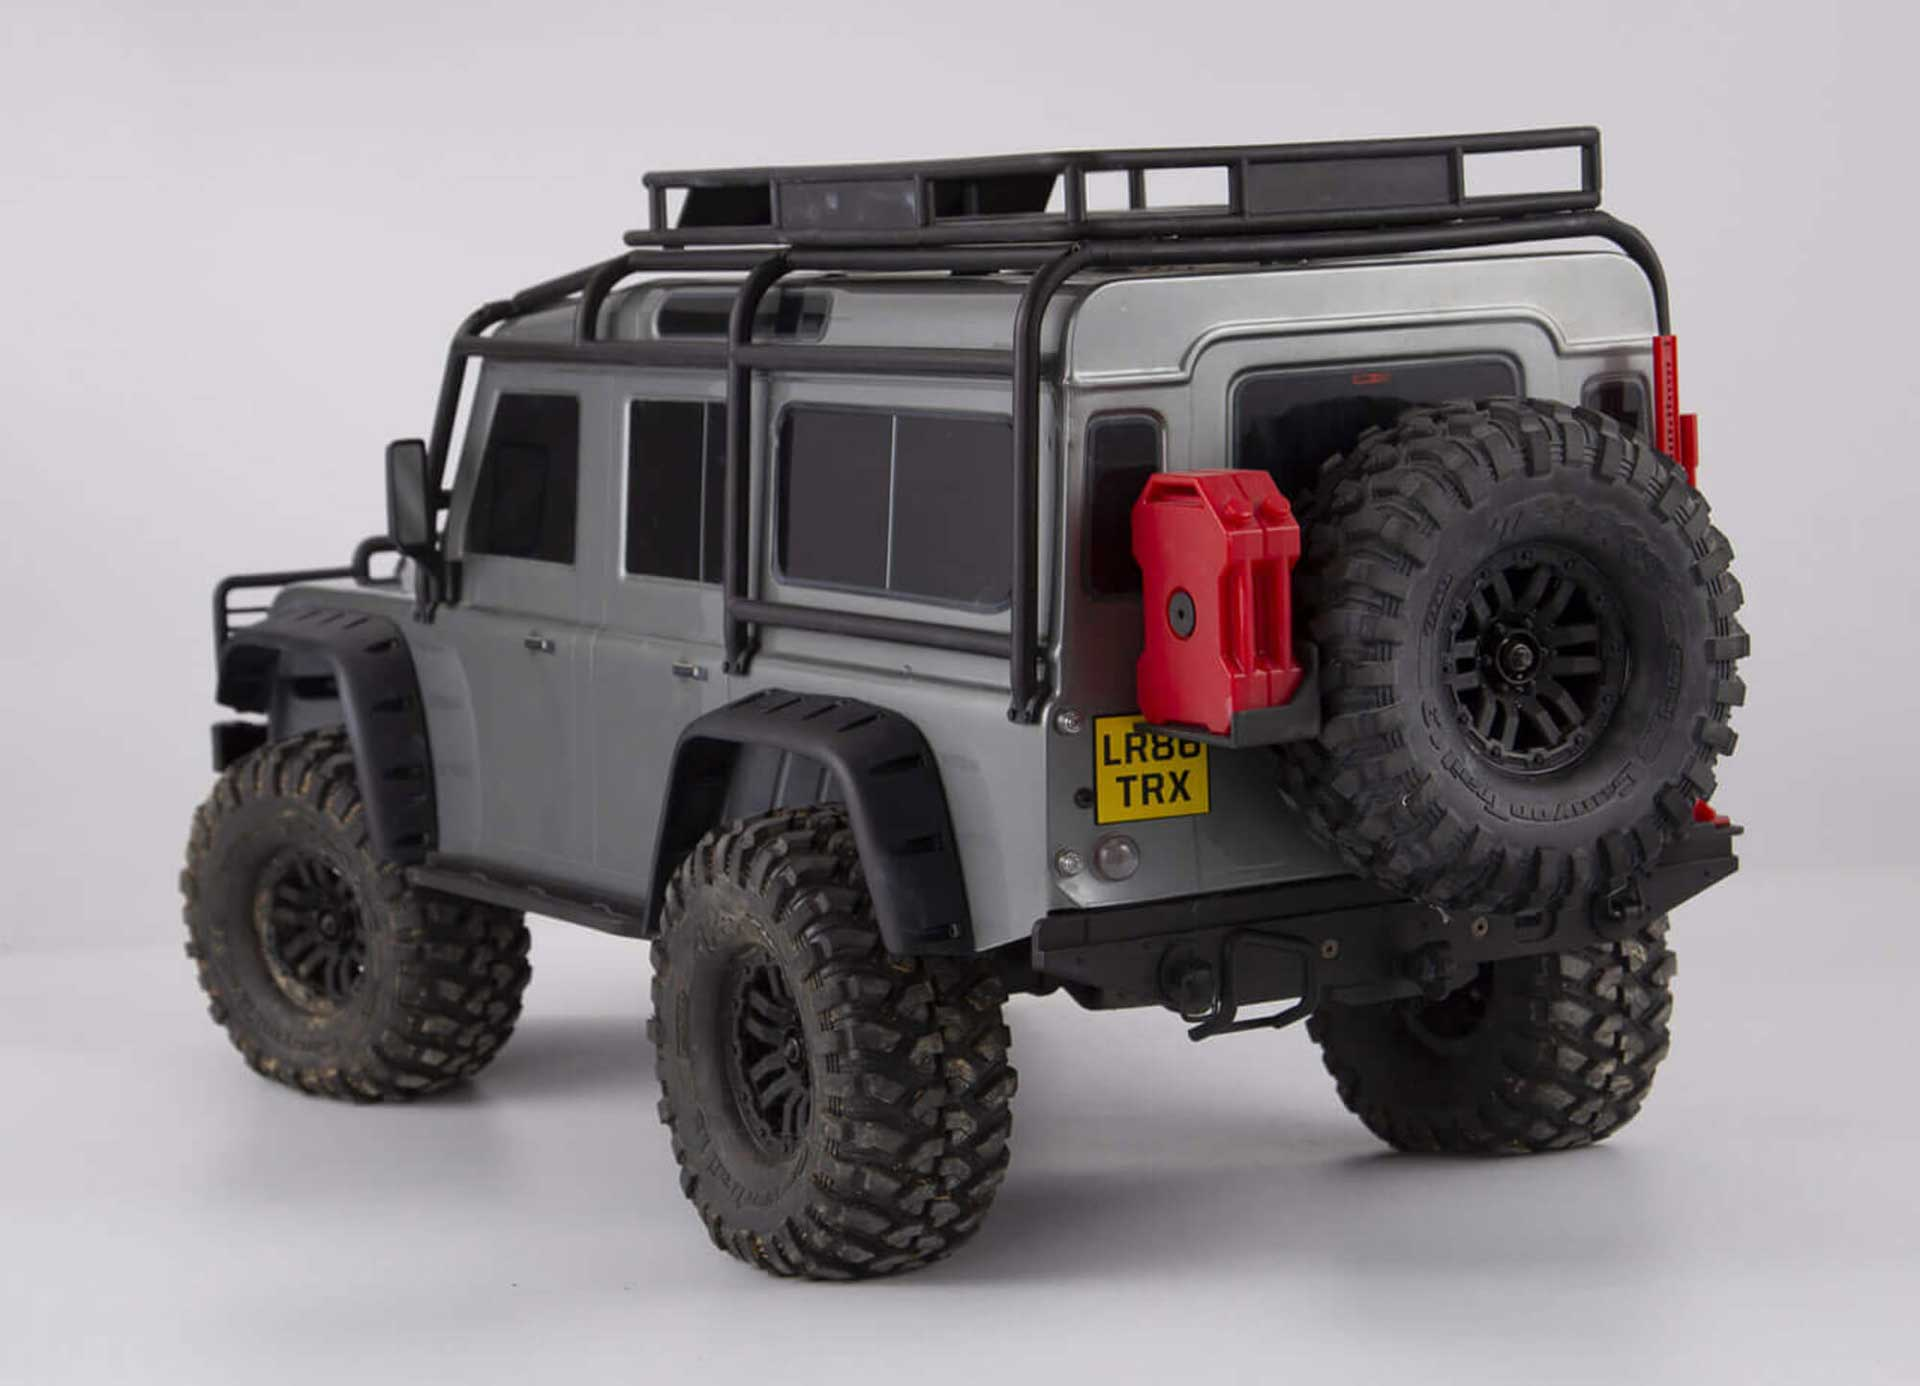 KILLER BODY Marauder II Bumper front/rear for SCX10 / TRX-4